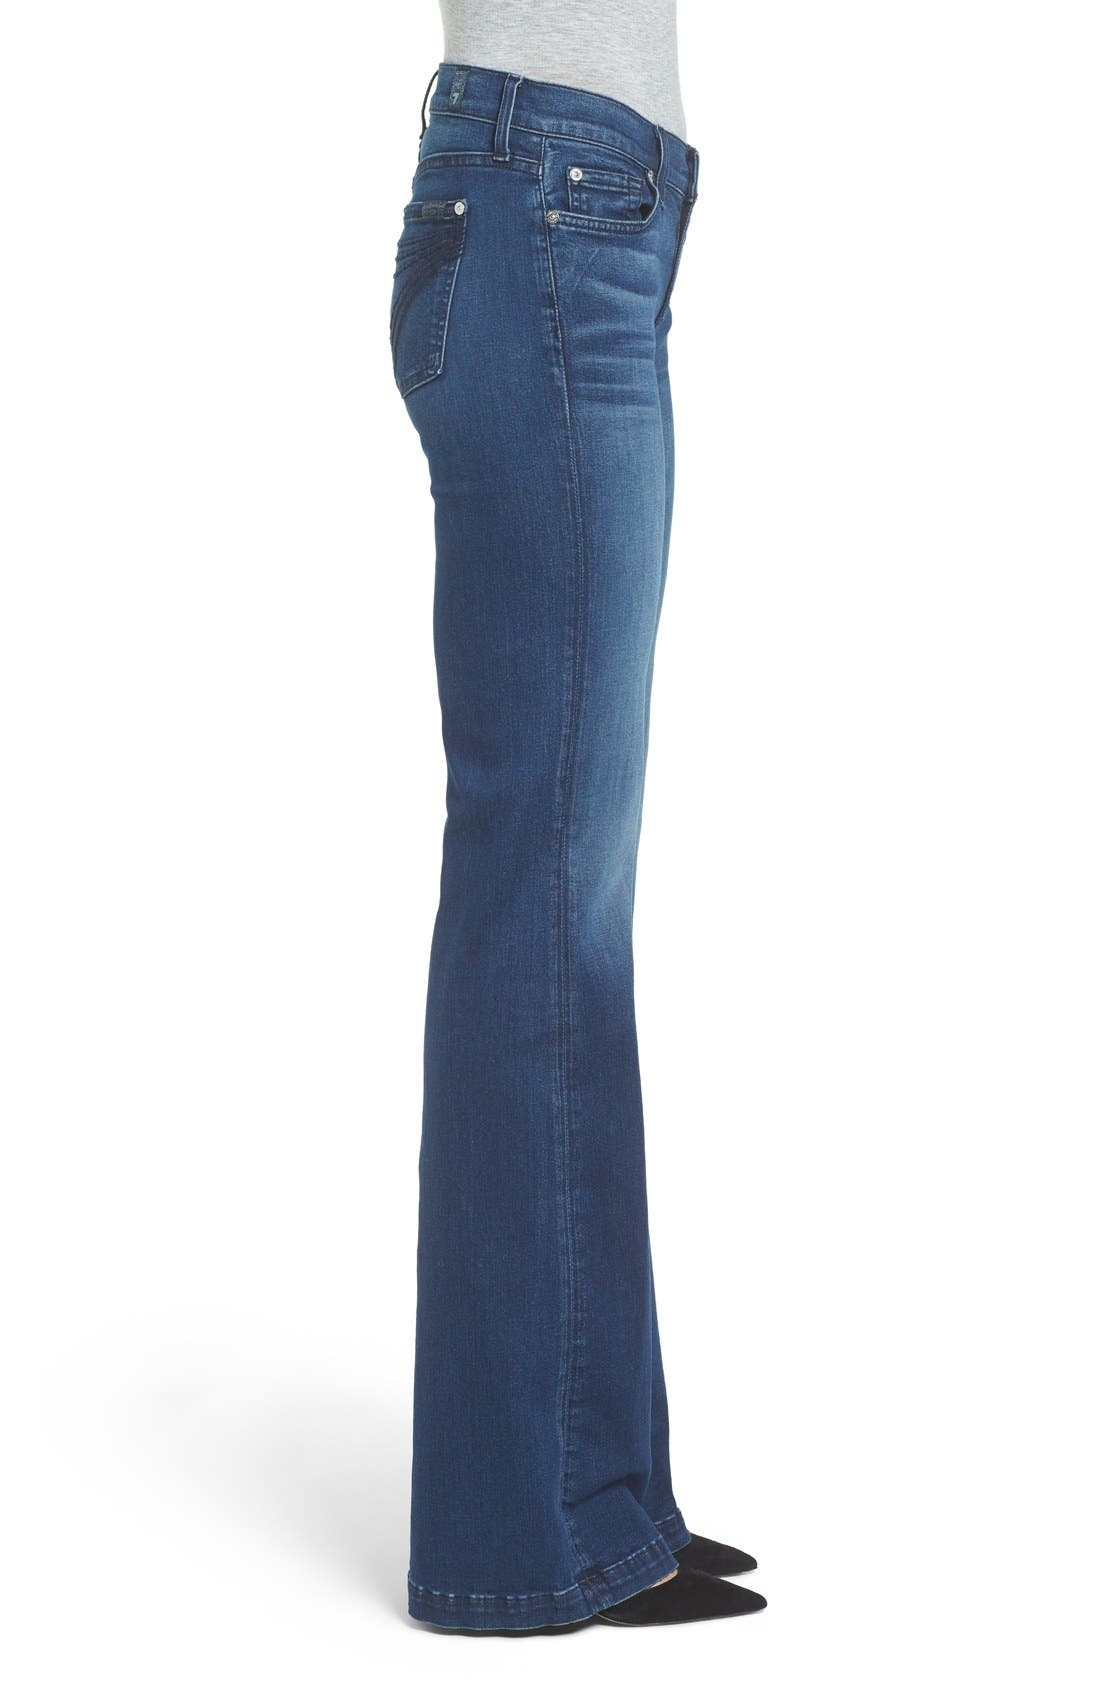 Alternate Image 3  - 7 For All Mankind Tailorless Dojo Flare Jeans (Slim Illusion Luxe Luminous)